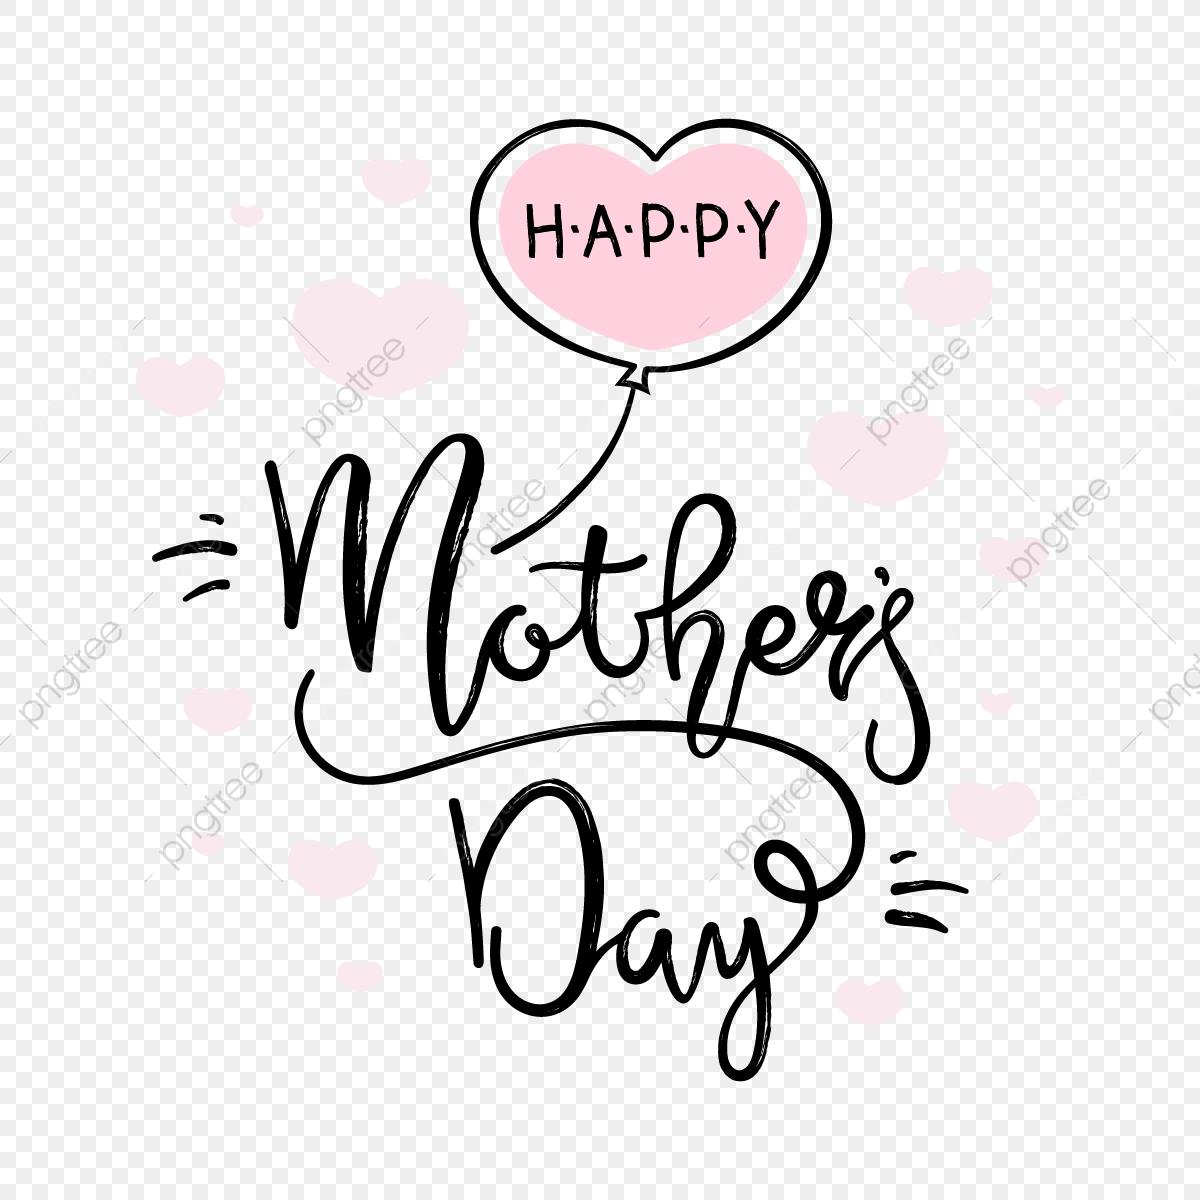 Mothers Day Greetings Png - Happy Mothers Day Card, Mothers Day Clipart, Typography, Mom PNG ...